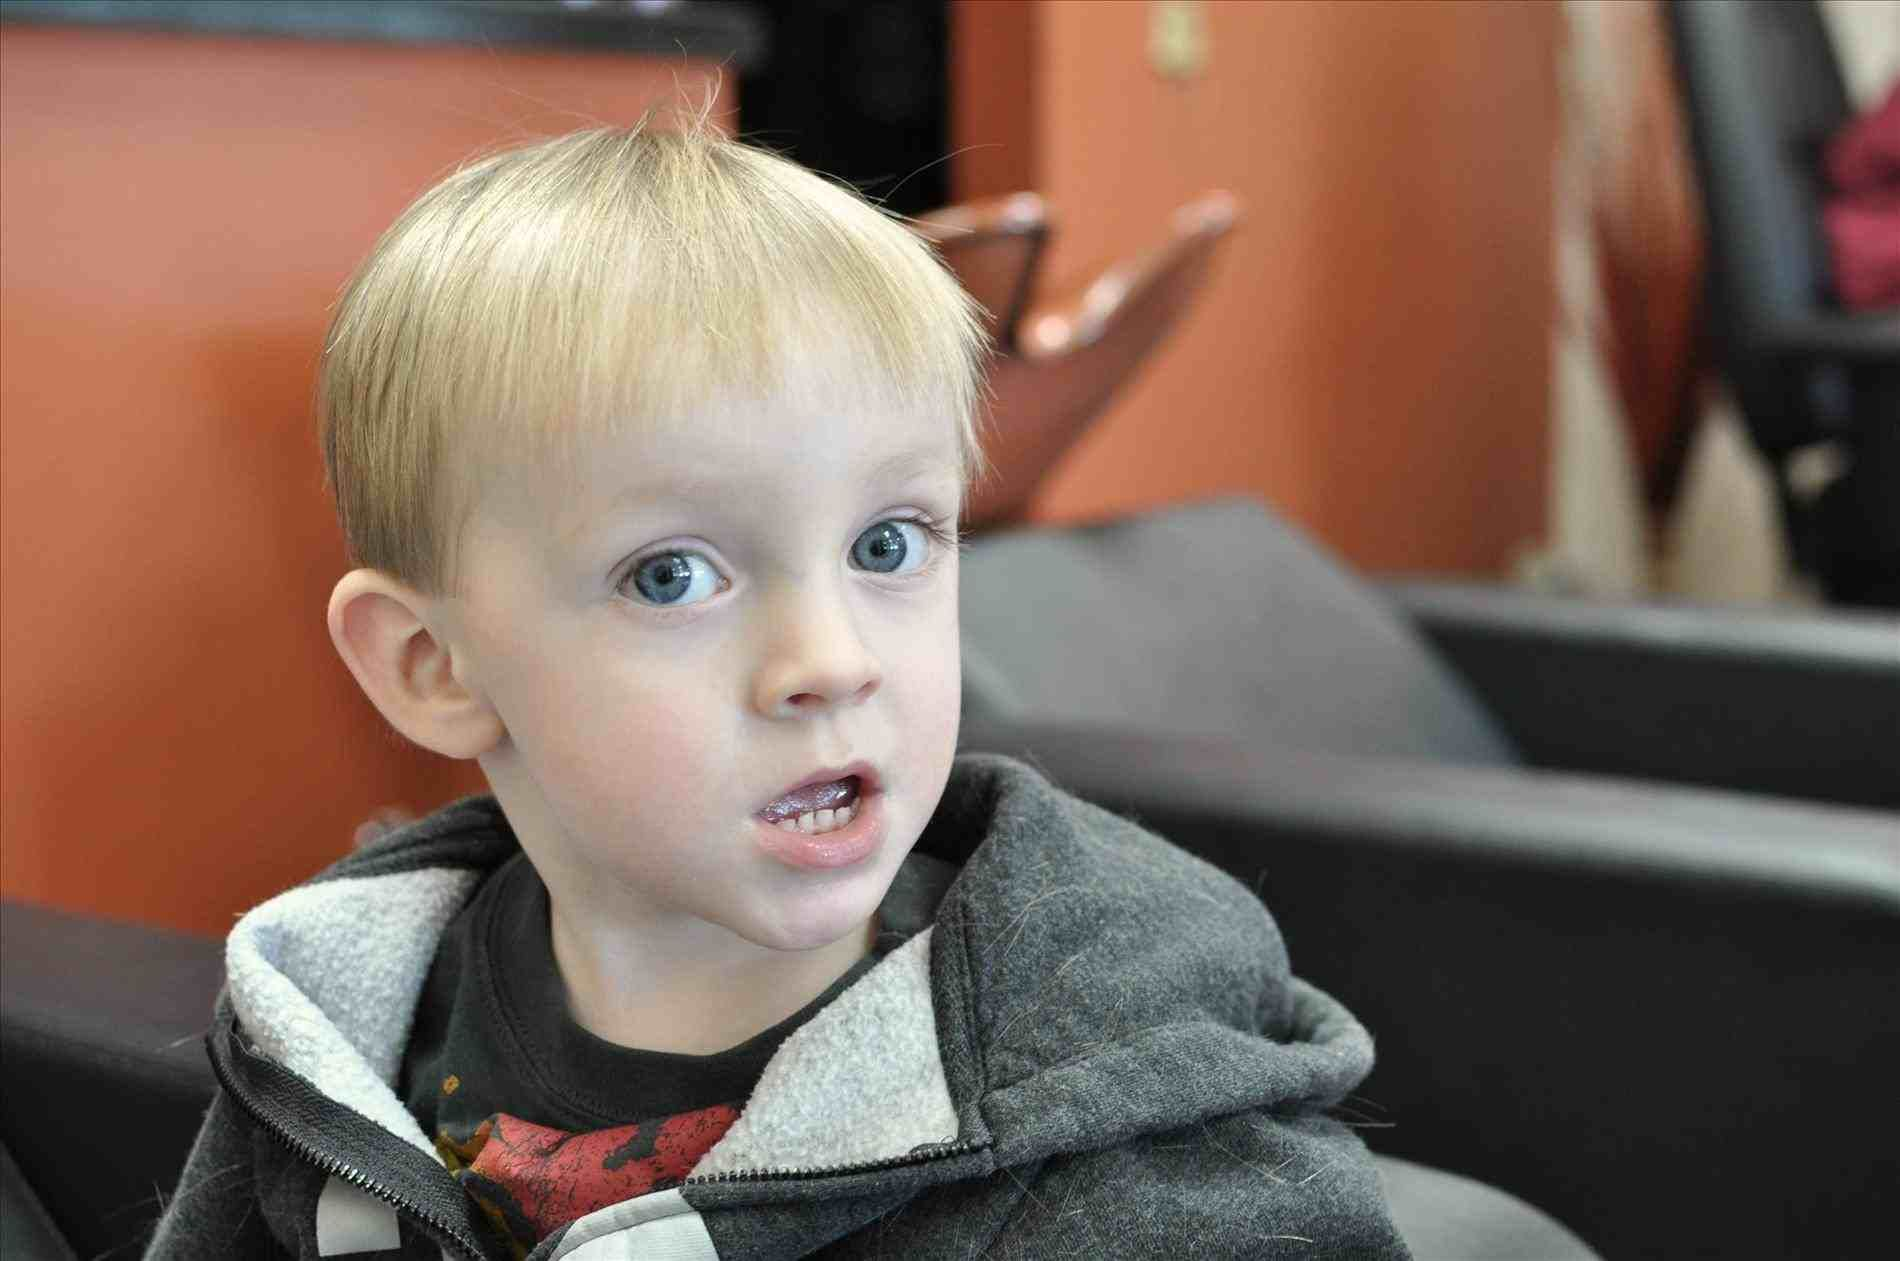 Baby Boy Haircuts Before And After Hair Stylist And Models